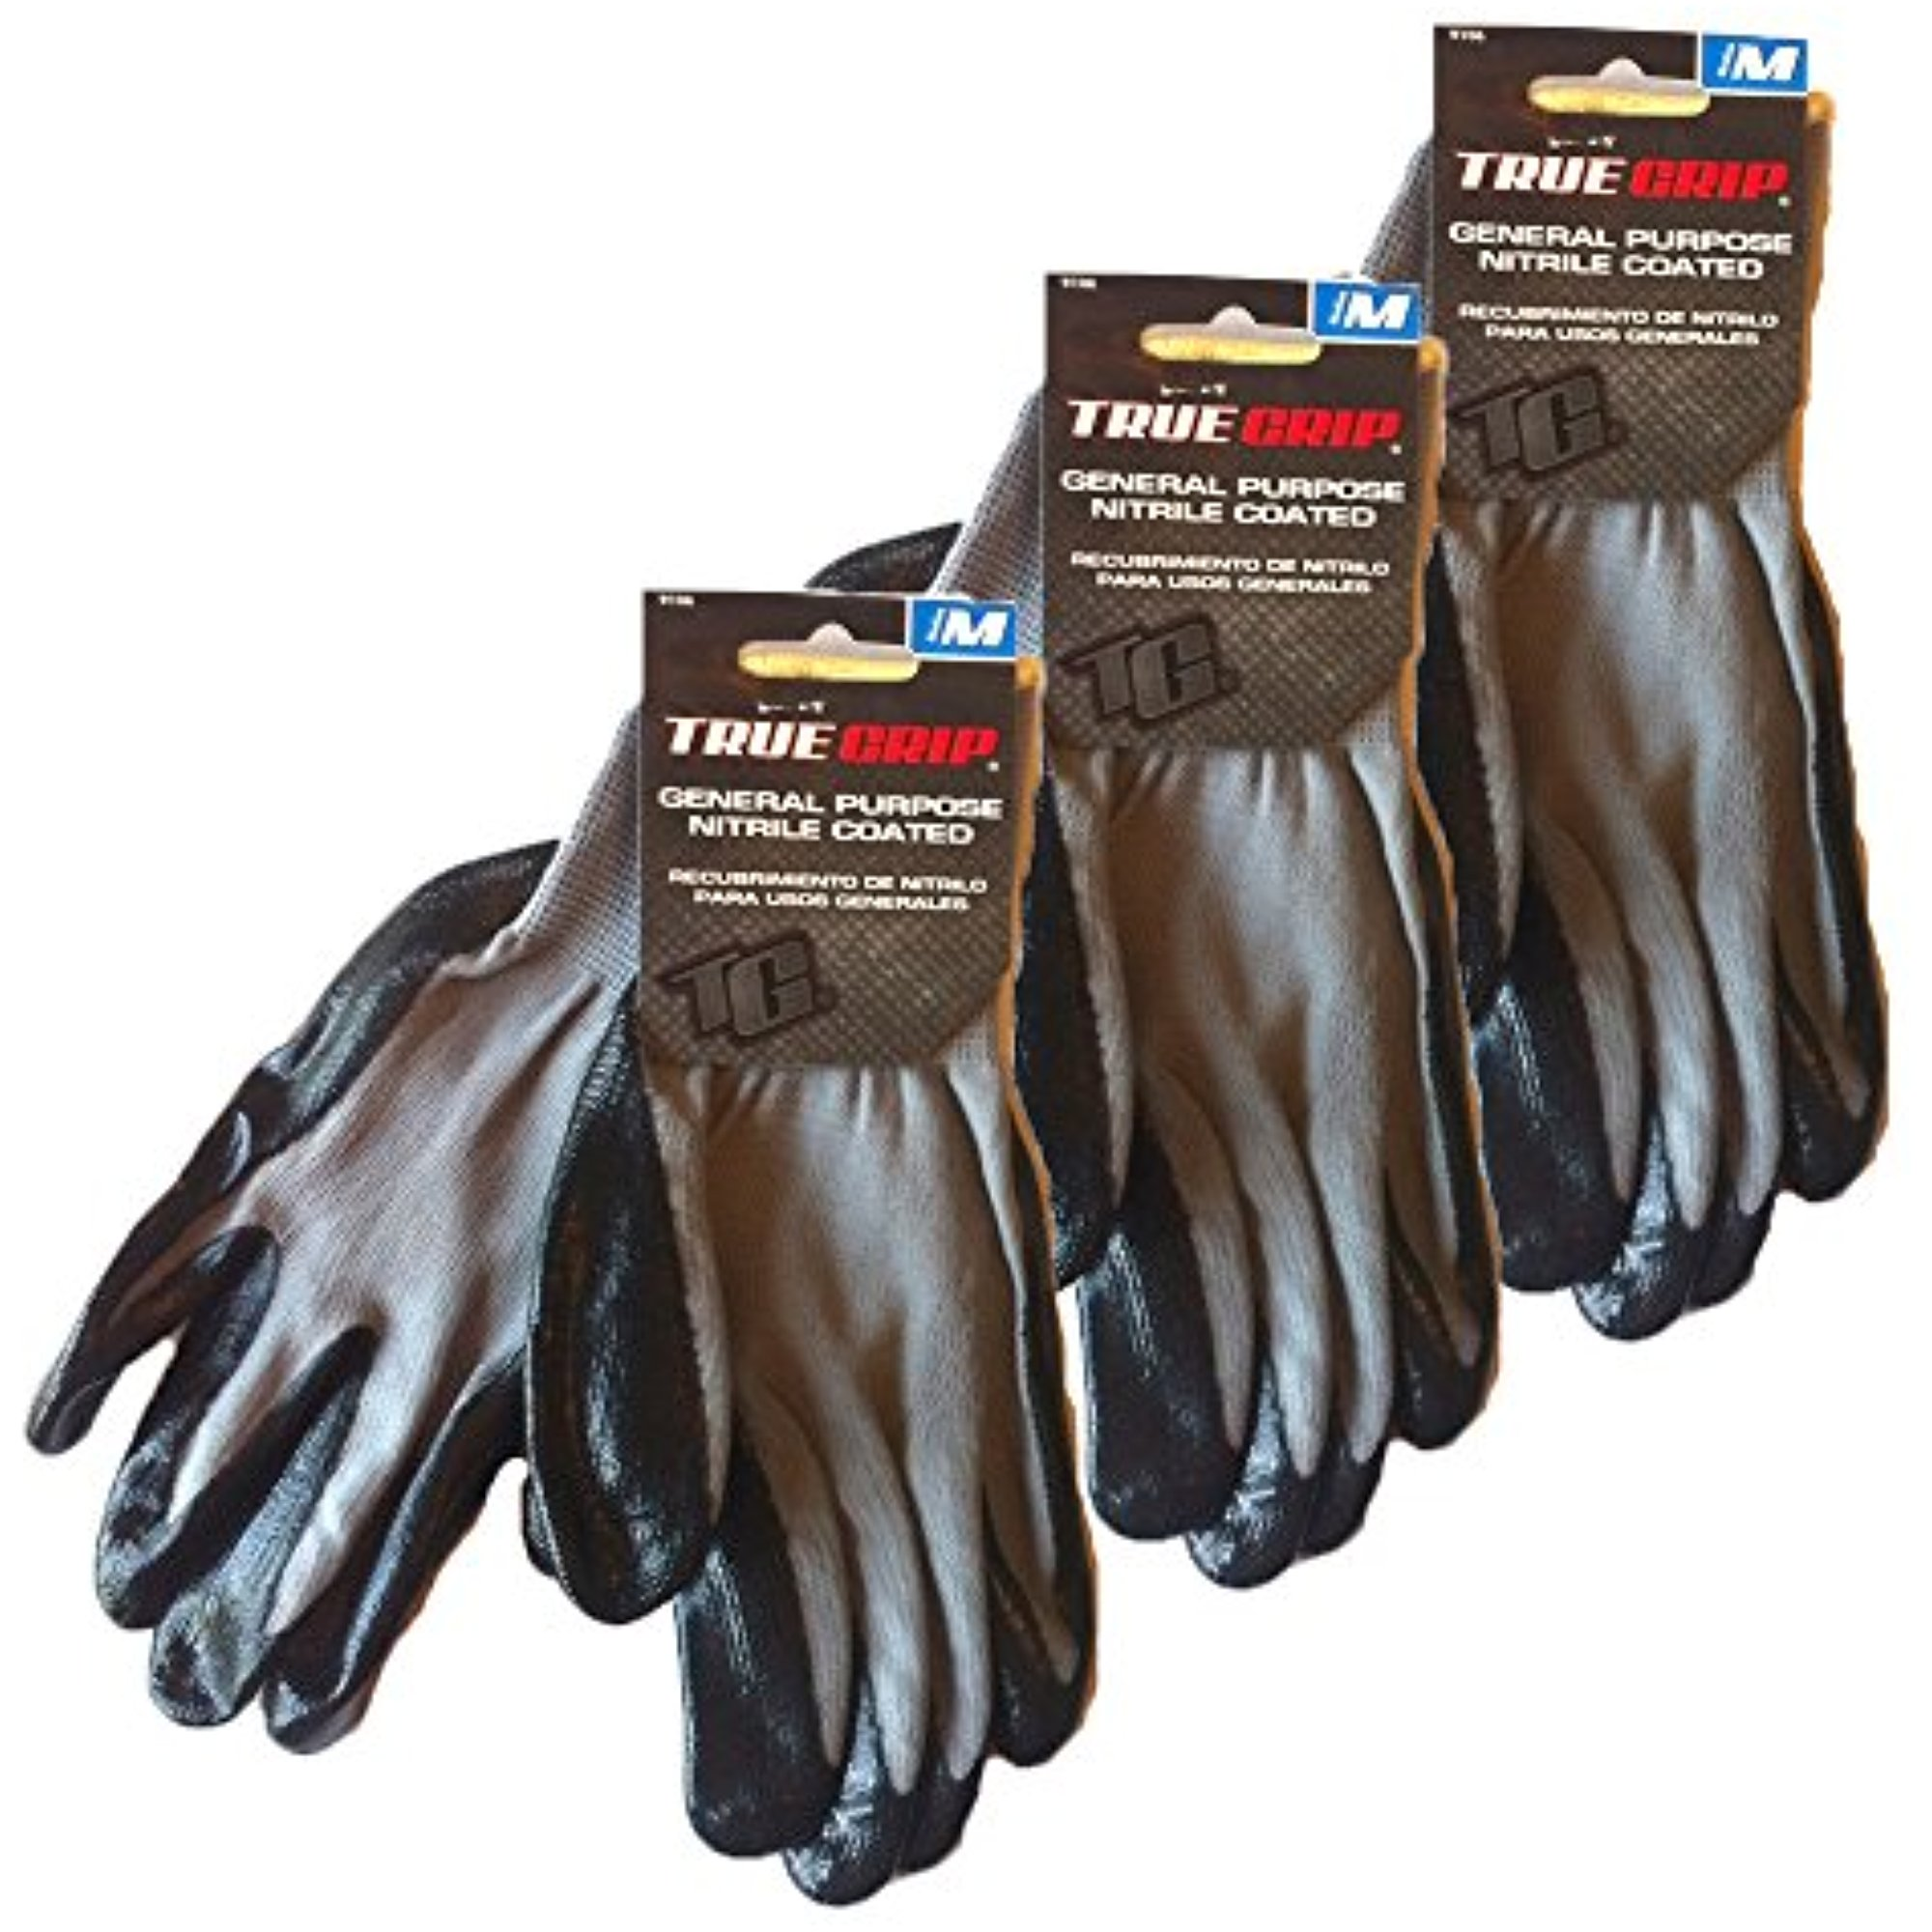 True Grip General Purpose Nitrile Coated Medium Work Gloves (3)